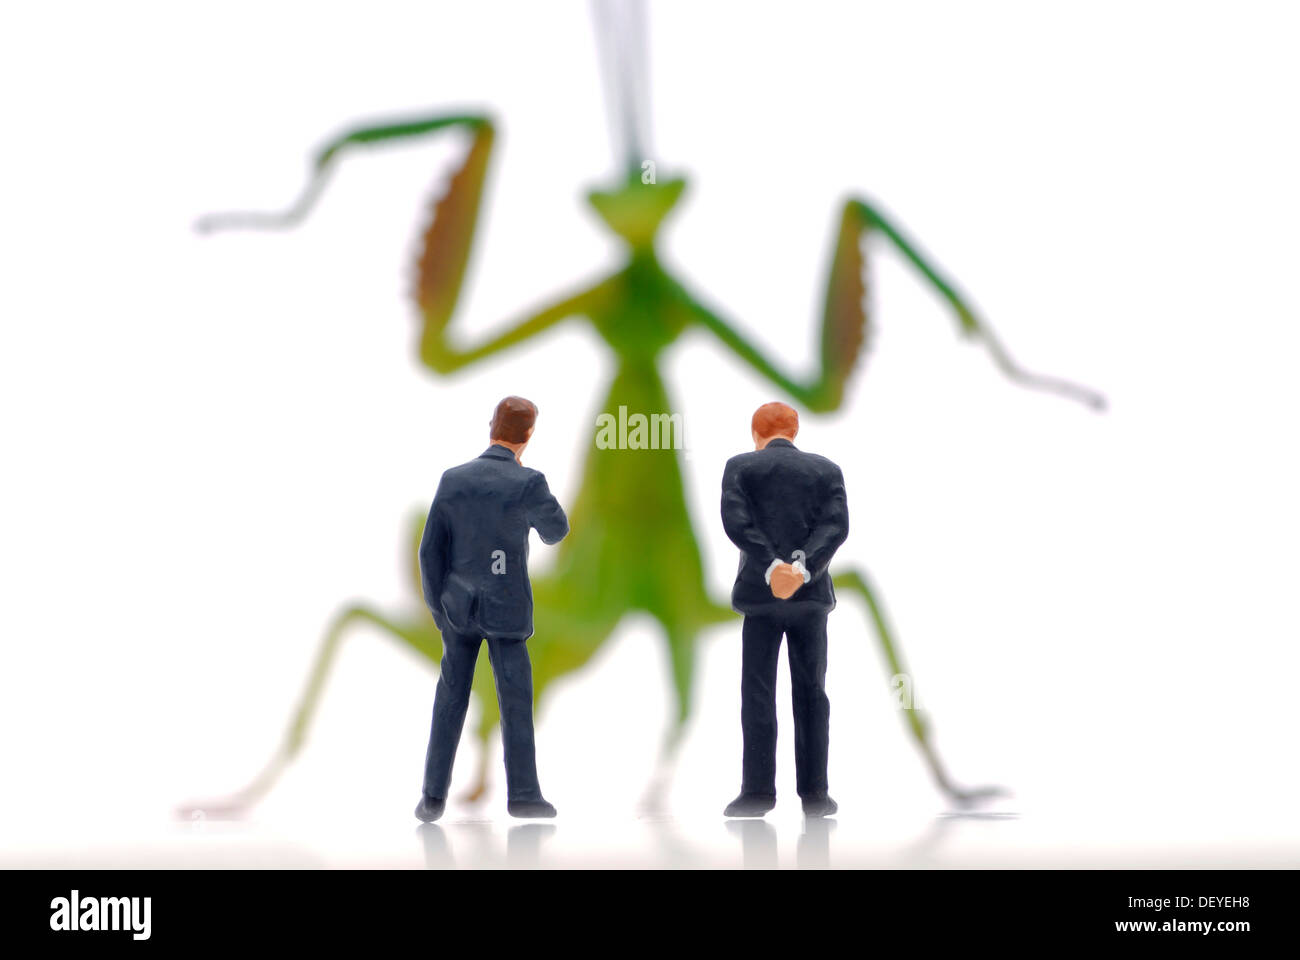 Miniature businessmen figures in front of a locust, symbolic image for hedge funds Stock Photo